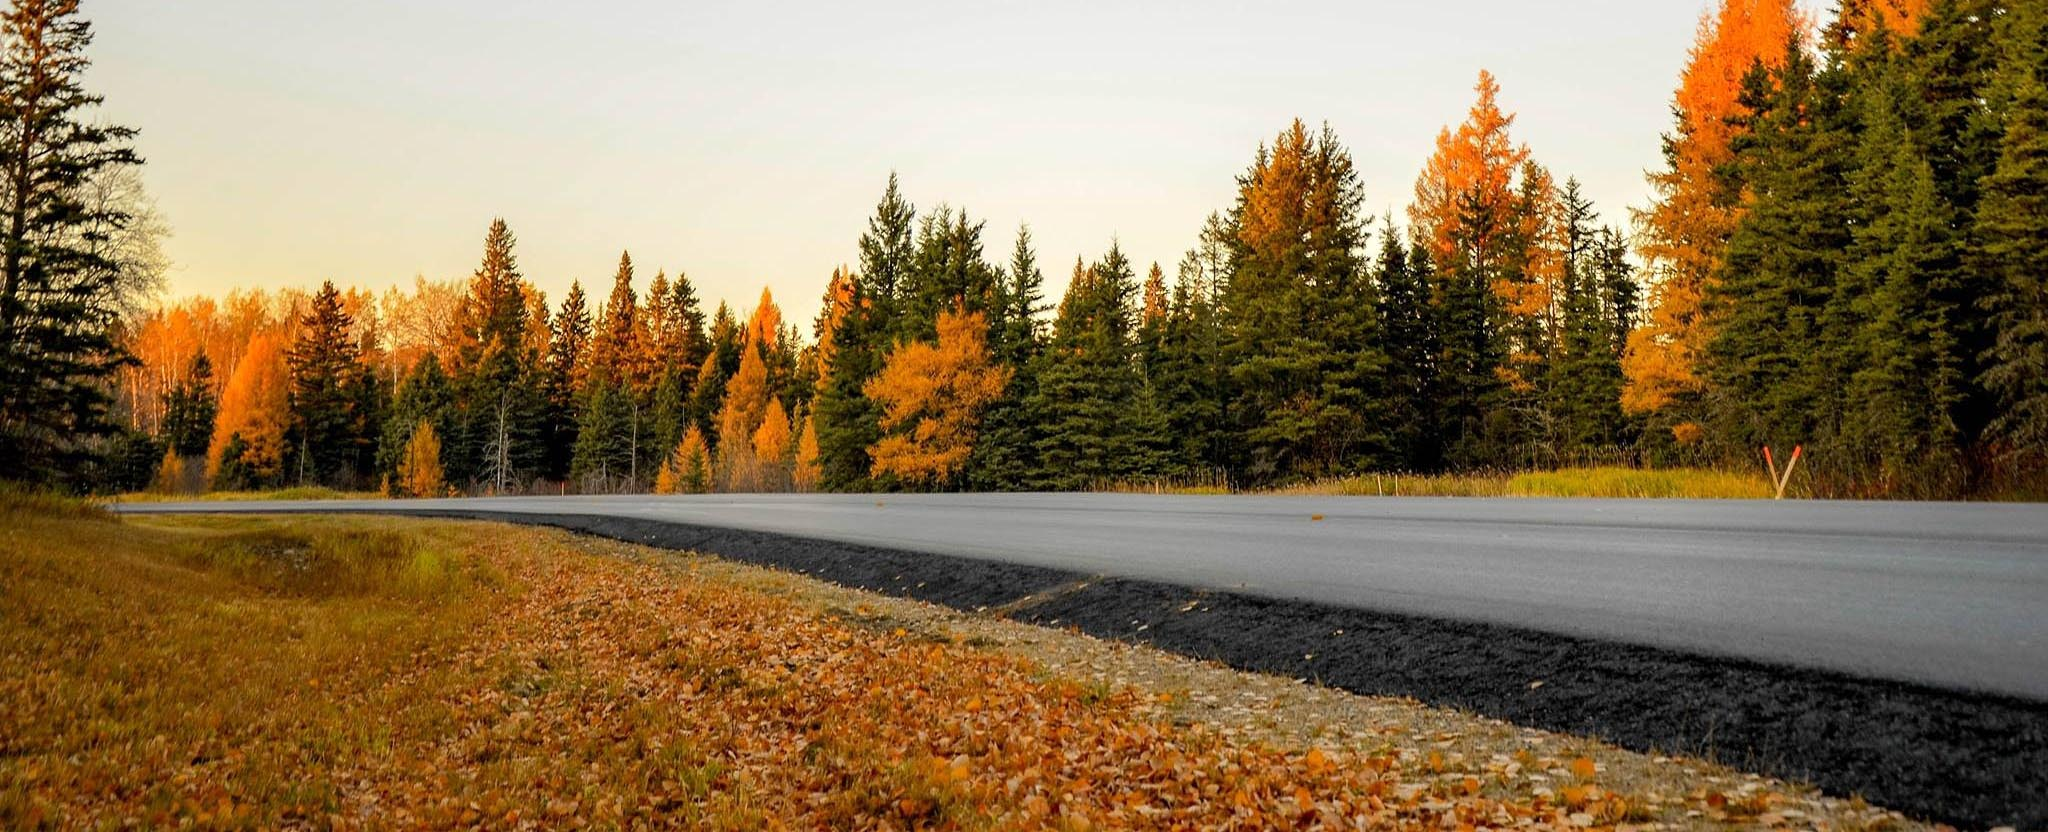 take-your-rv-out-this-fall-autumn-road